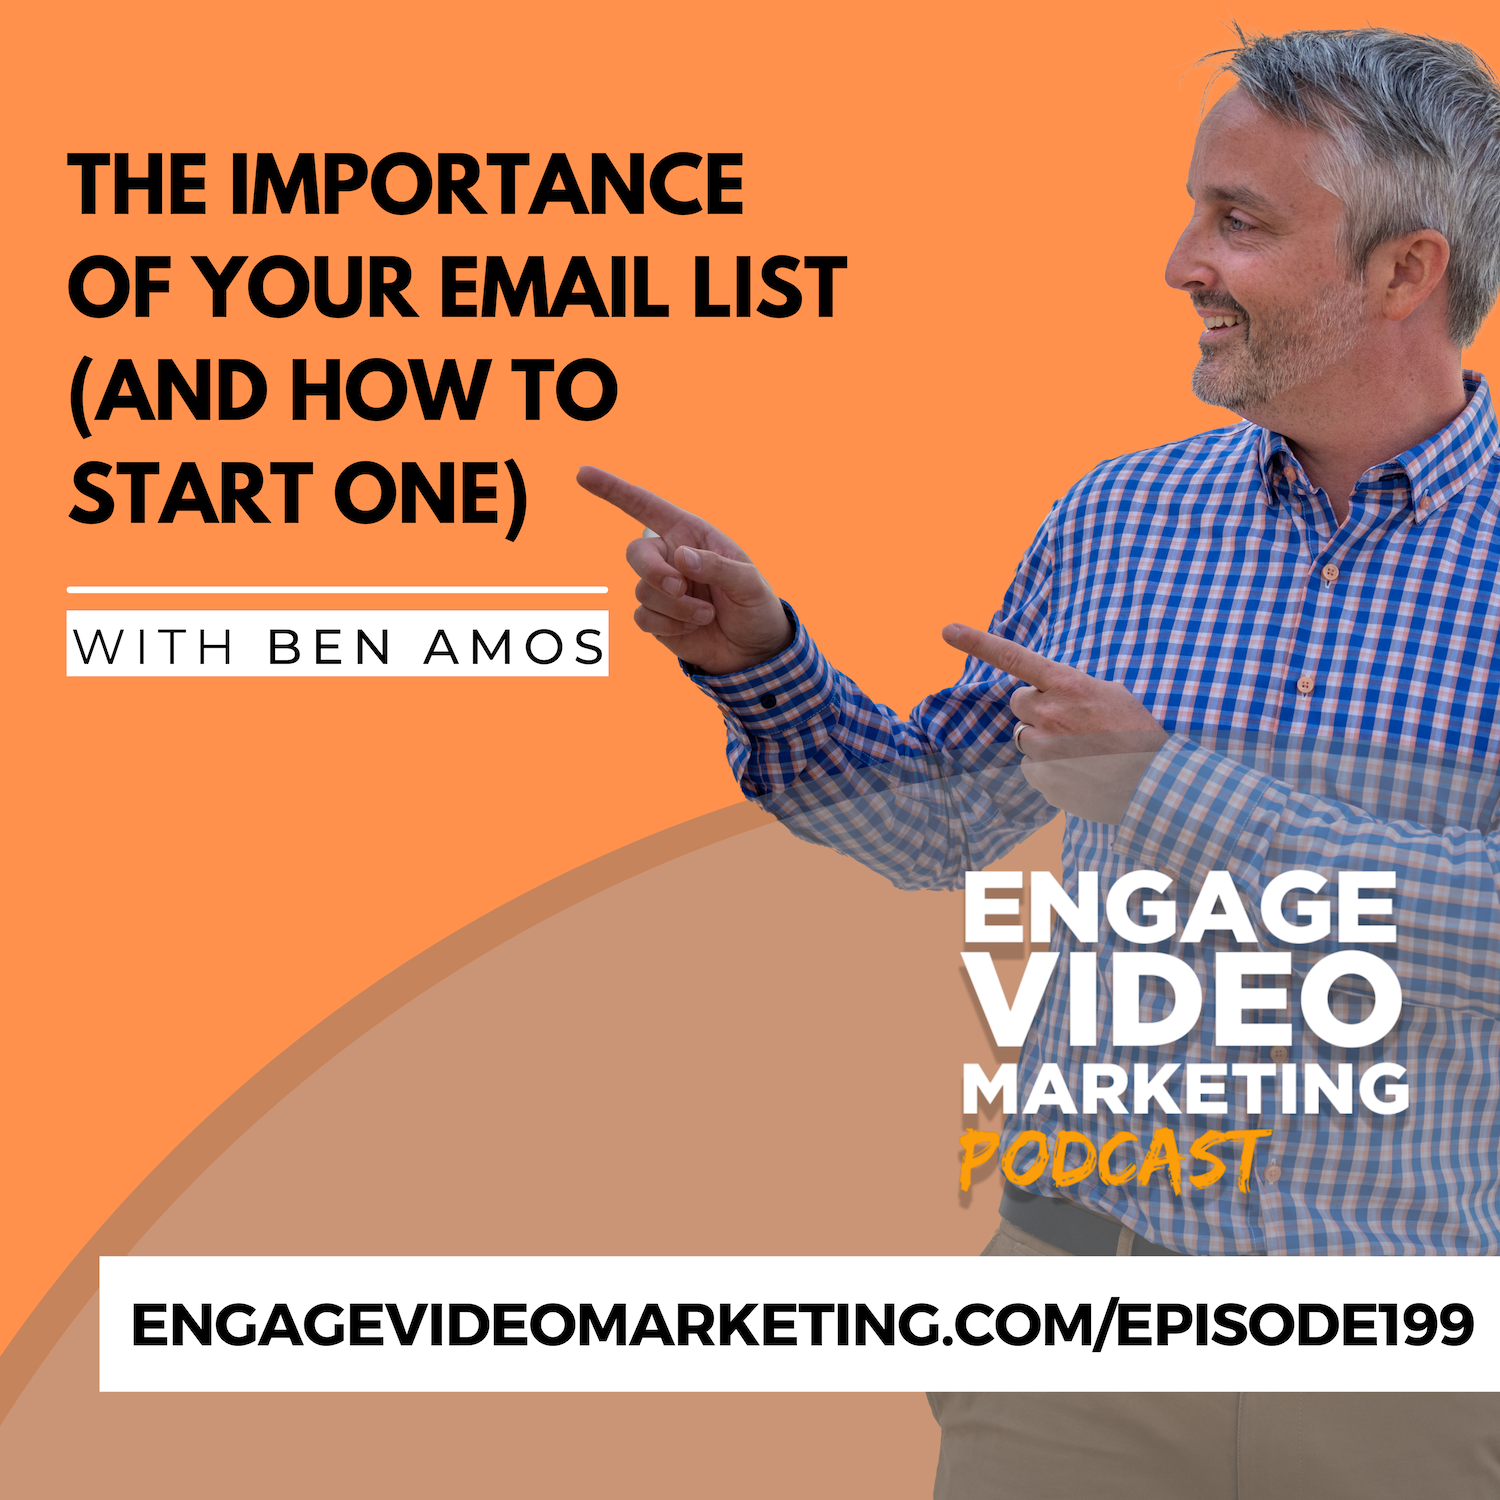 The Importance of Your Email List (and how to start one)